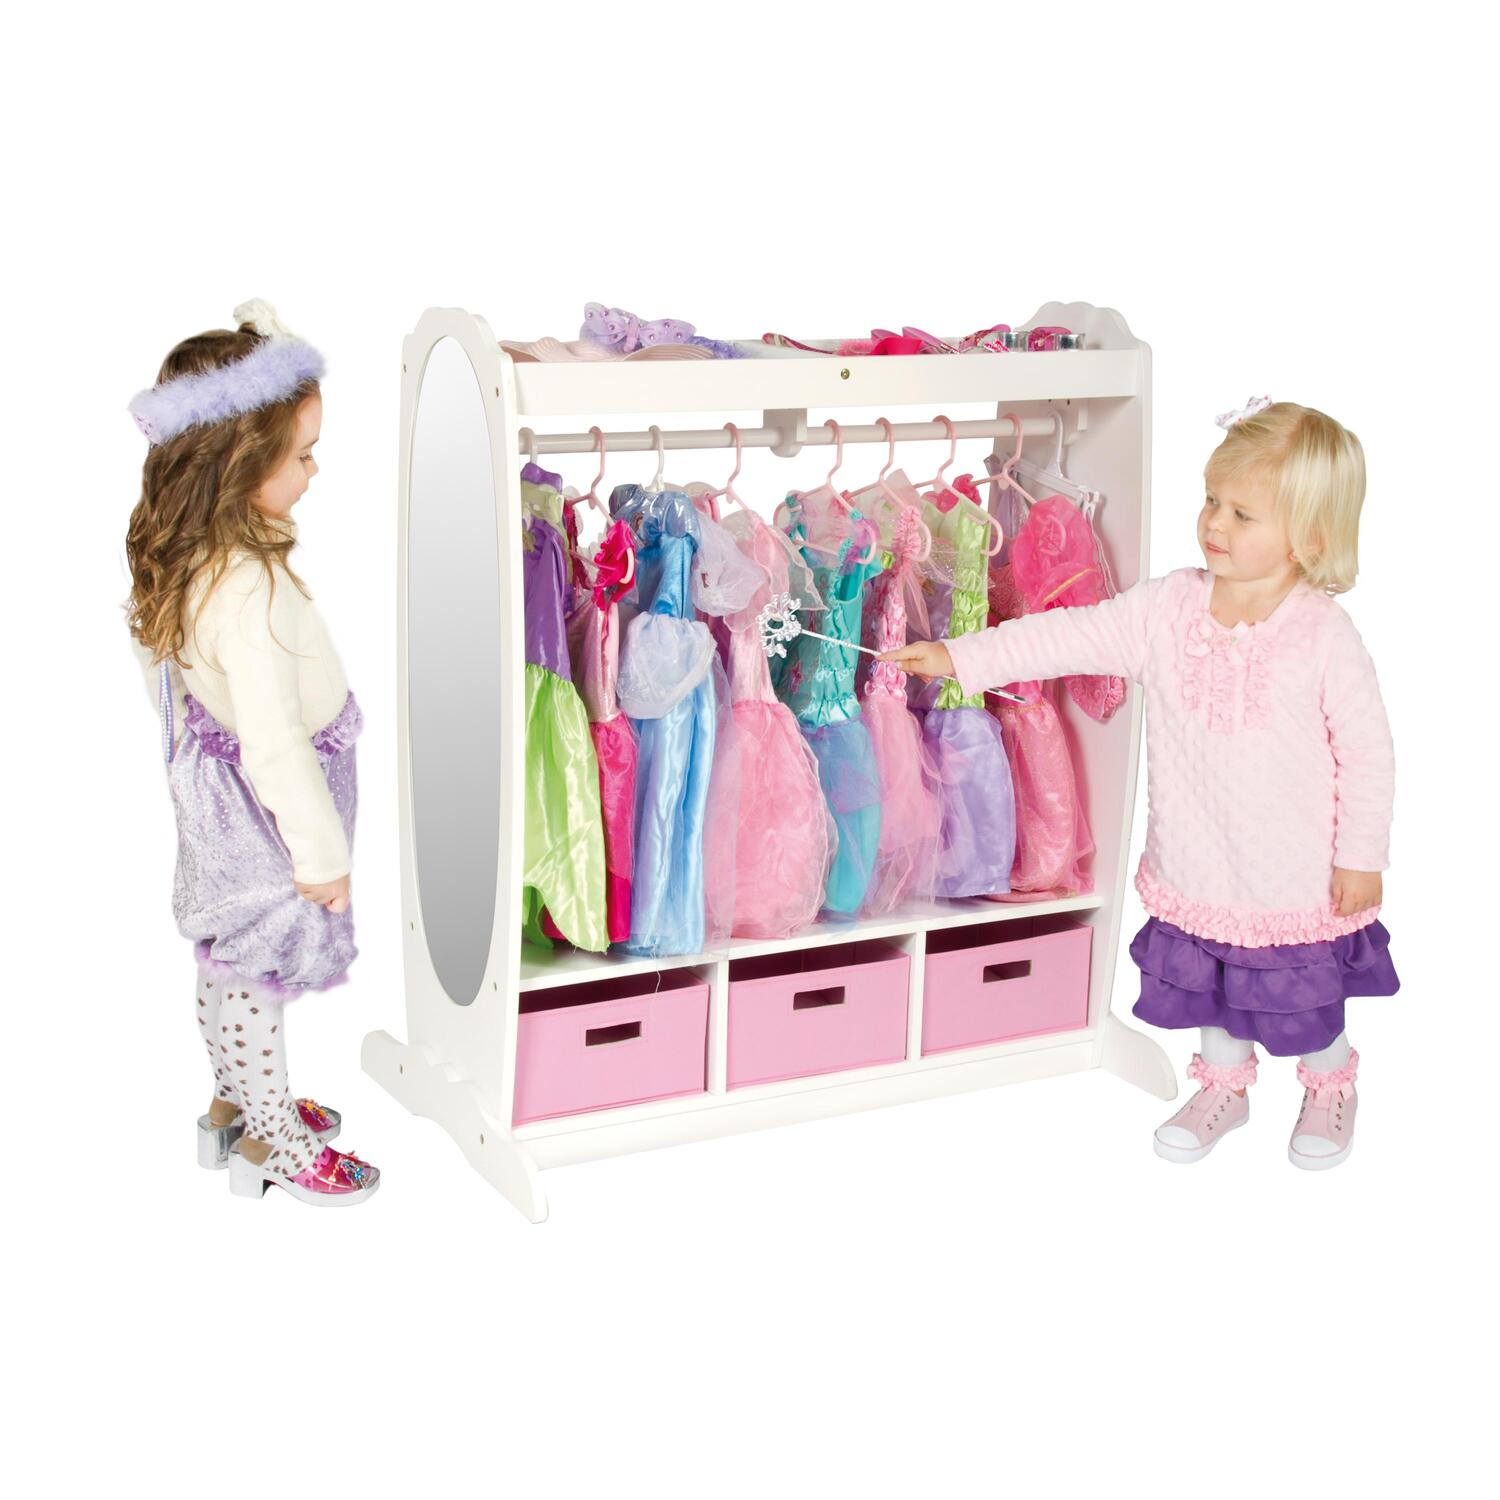 Guidecraft Dress Up Storage Center By Oj Commerce 137 36